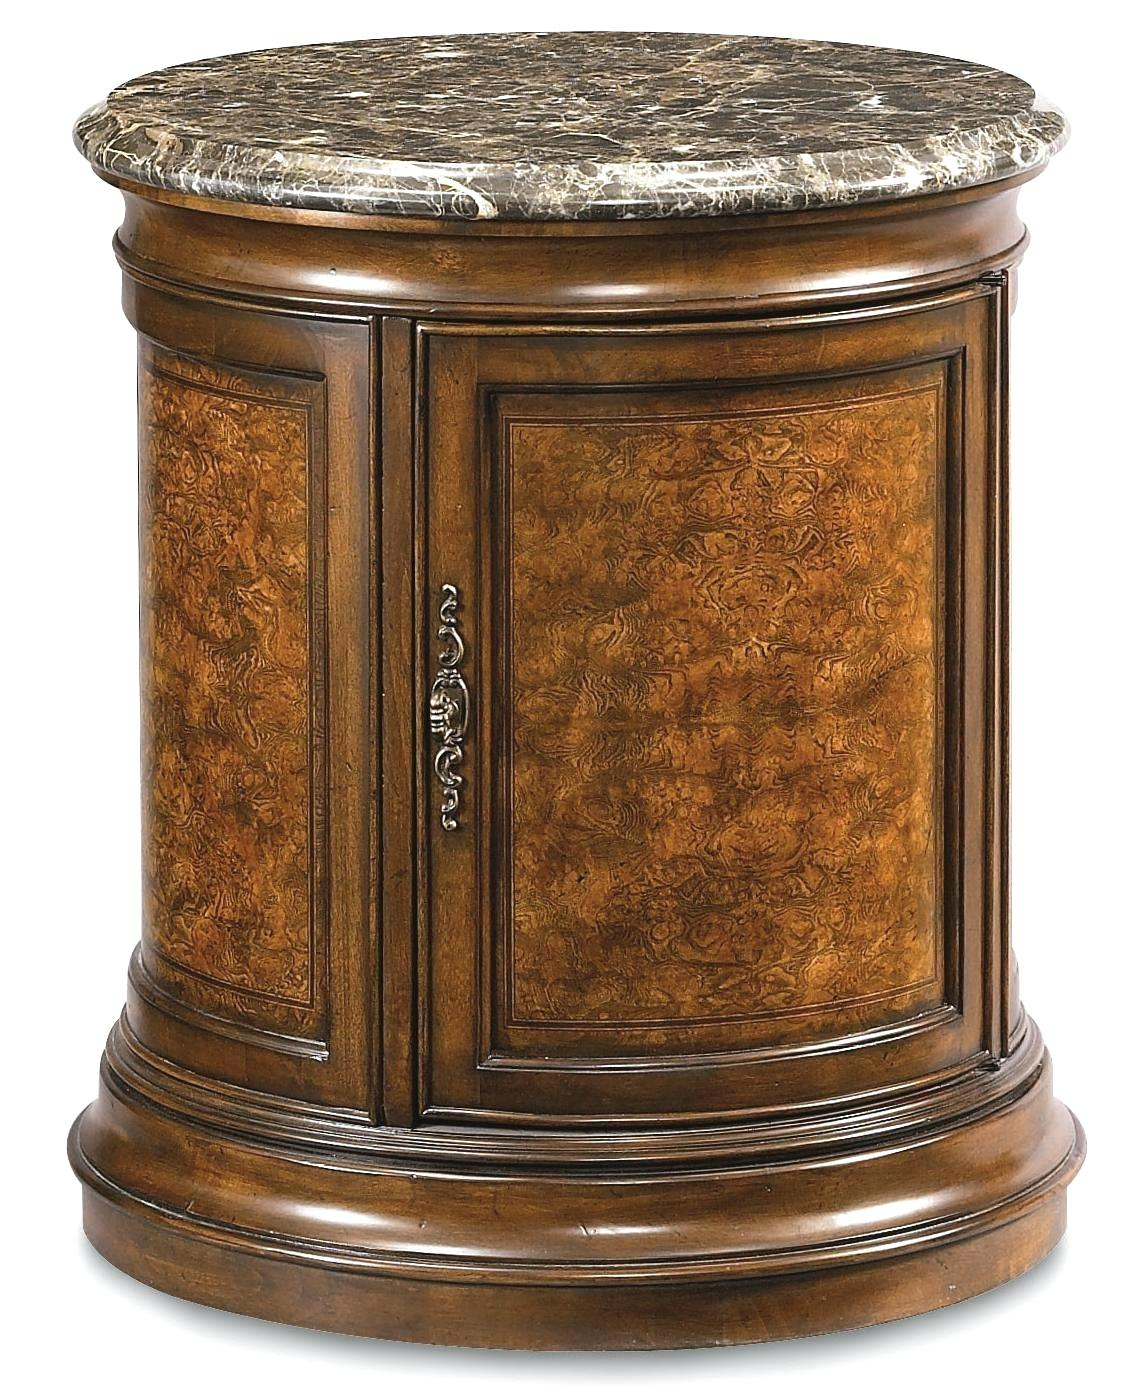 antique vintage burl wood leather top round drum table lamp fevcol door mahogany with drawer signy accent coffee duncan patio furniture covers canadian tire plastic garden and